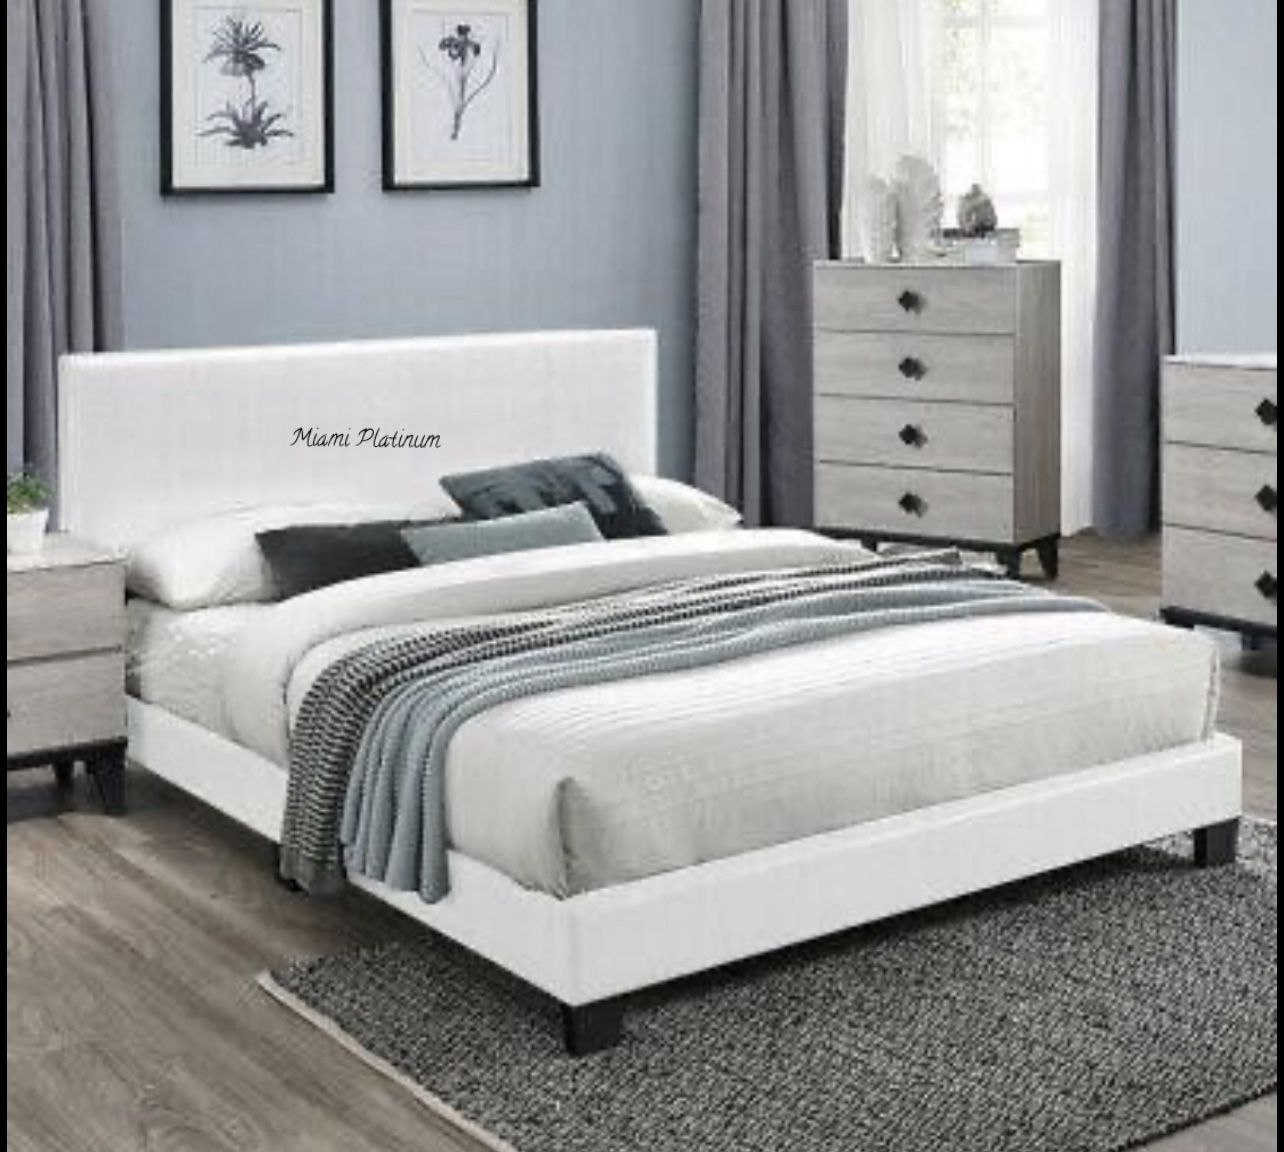 Queen Bed With Mattress /// Financing Available